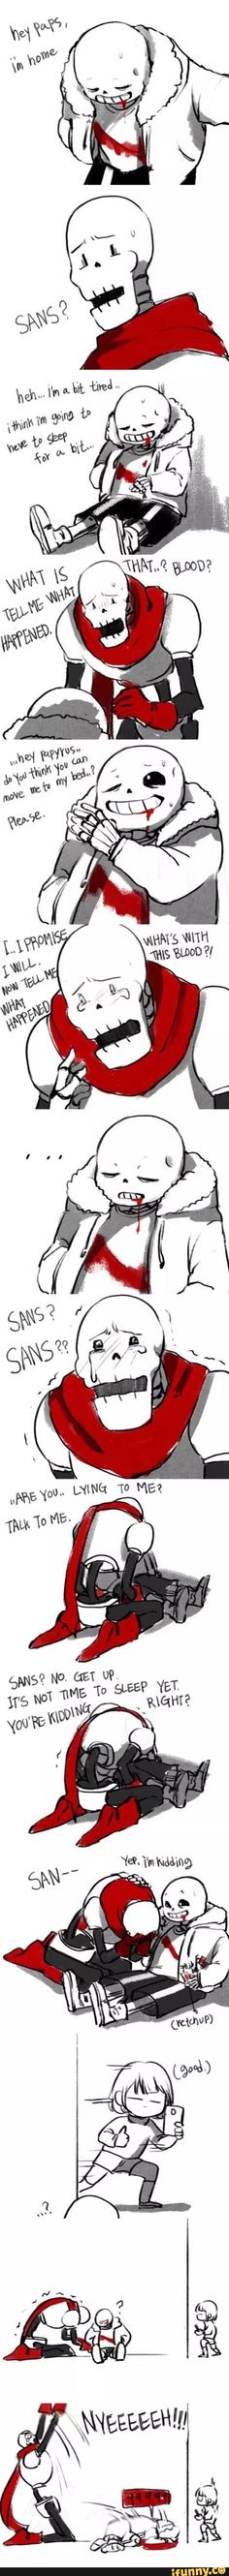 Nooooooo! Y You do this papyrus